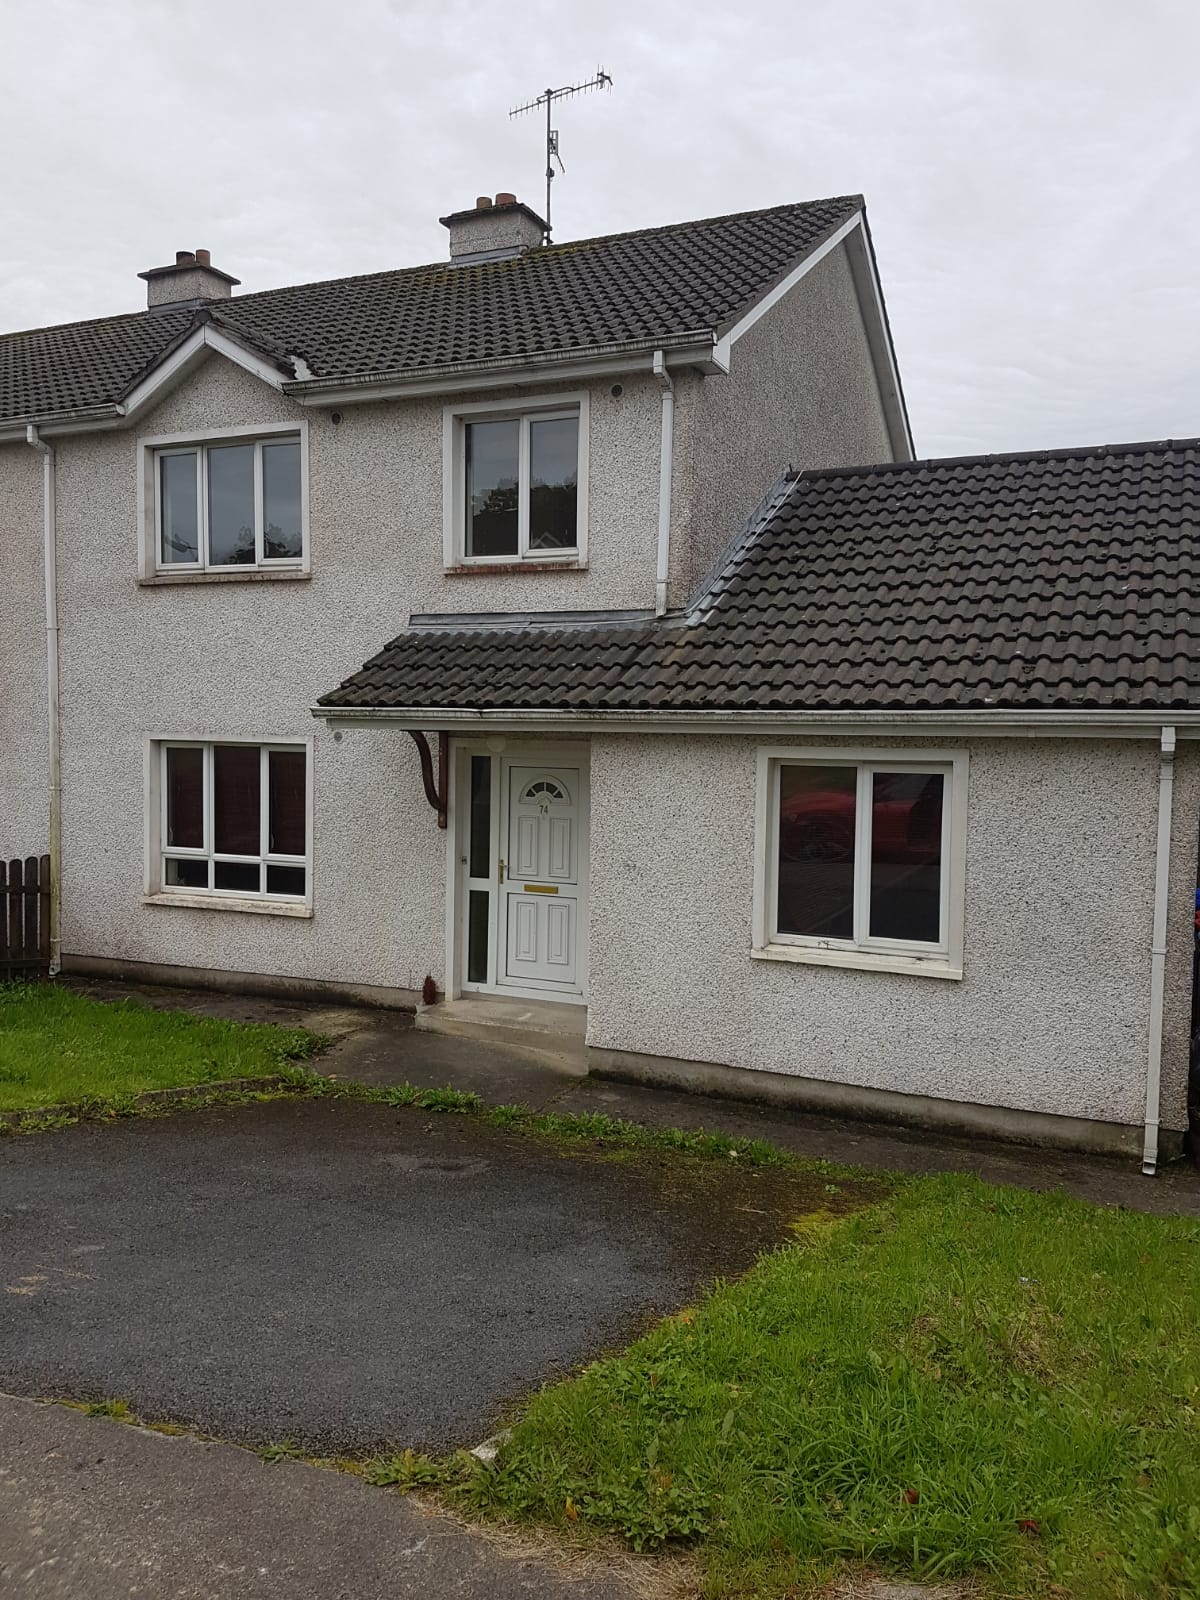 No 74 Admiran Park, Stranorlar, Co. Donegal